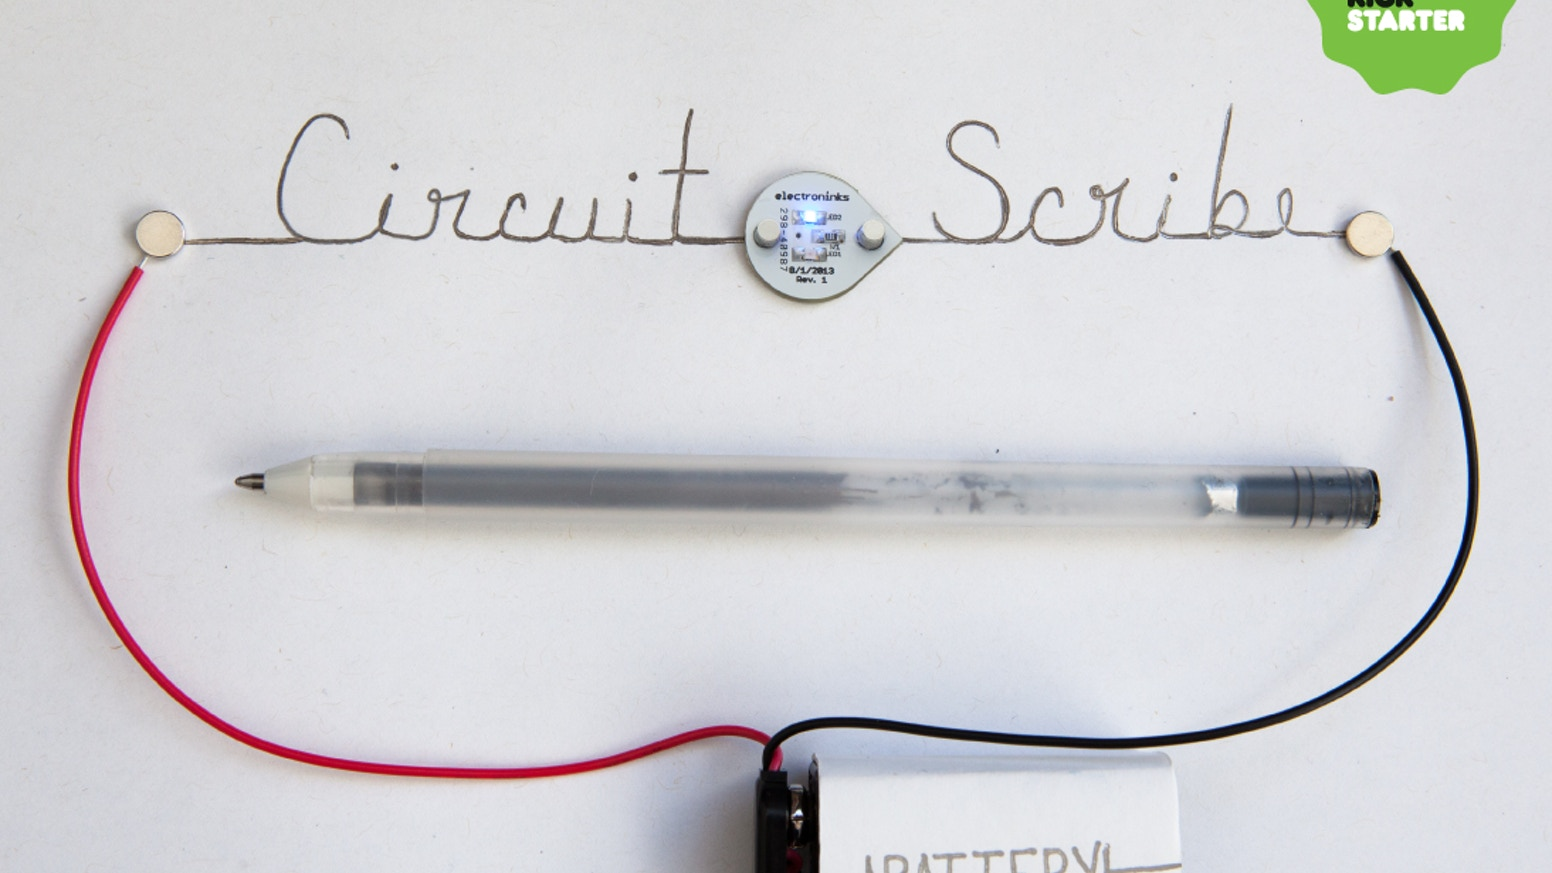 Circuit Scribe Draw Circuits Instantly By Electroninks Incorporated What Are Electronic Is A Rollerball Pen That Writes With Conductive Silver Ink It Makes Creating